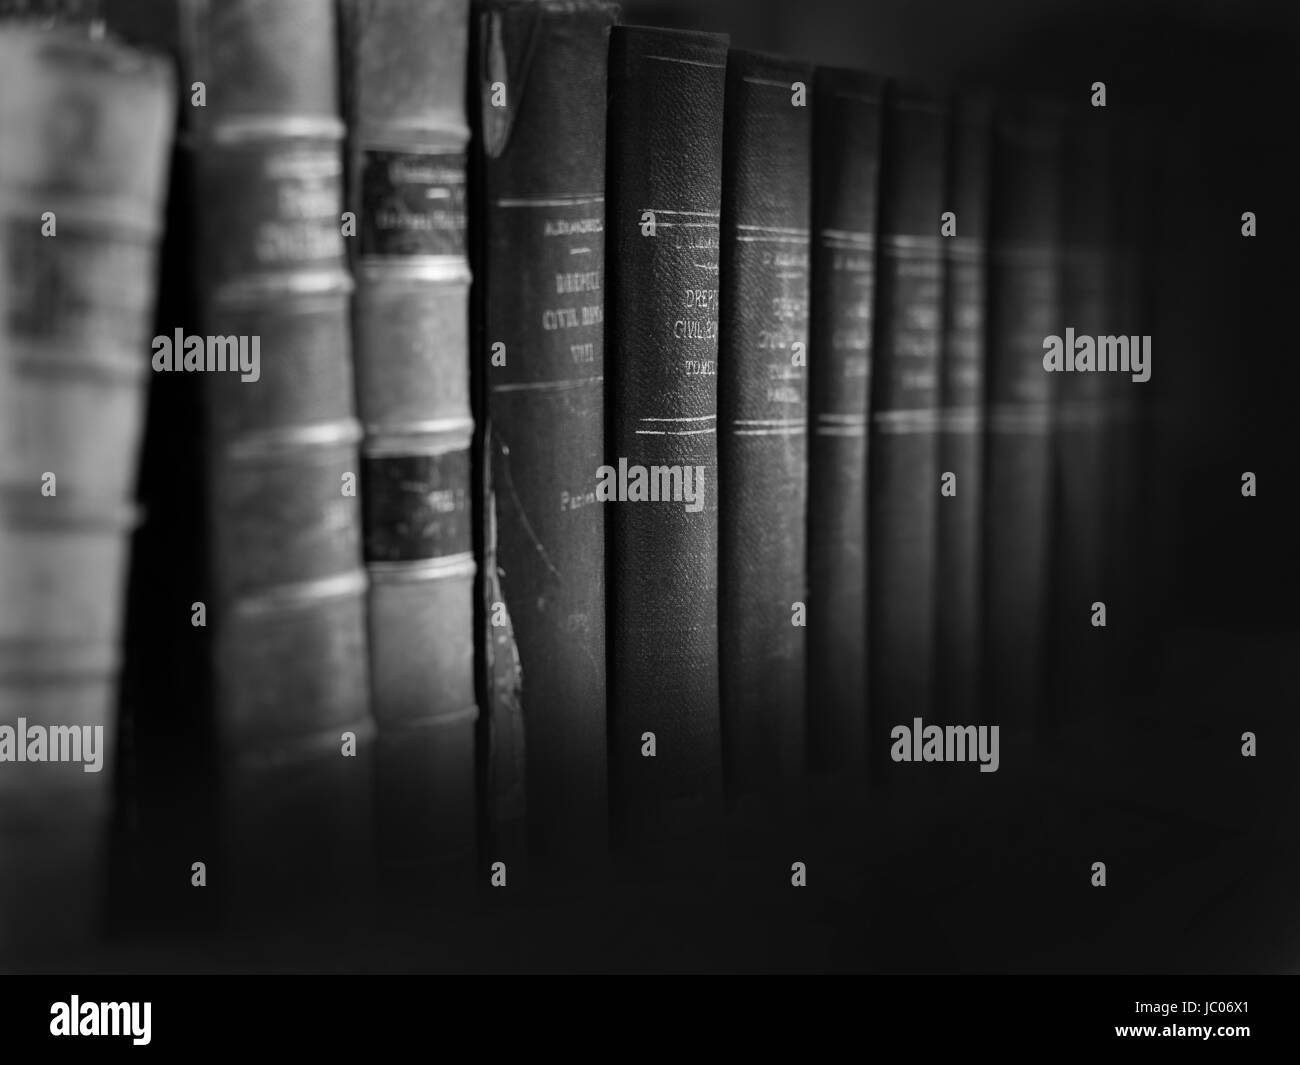 old legal books background - Stock Image